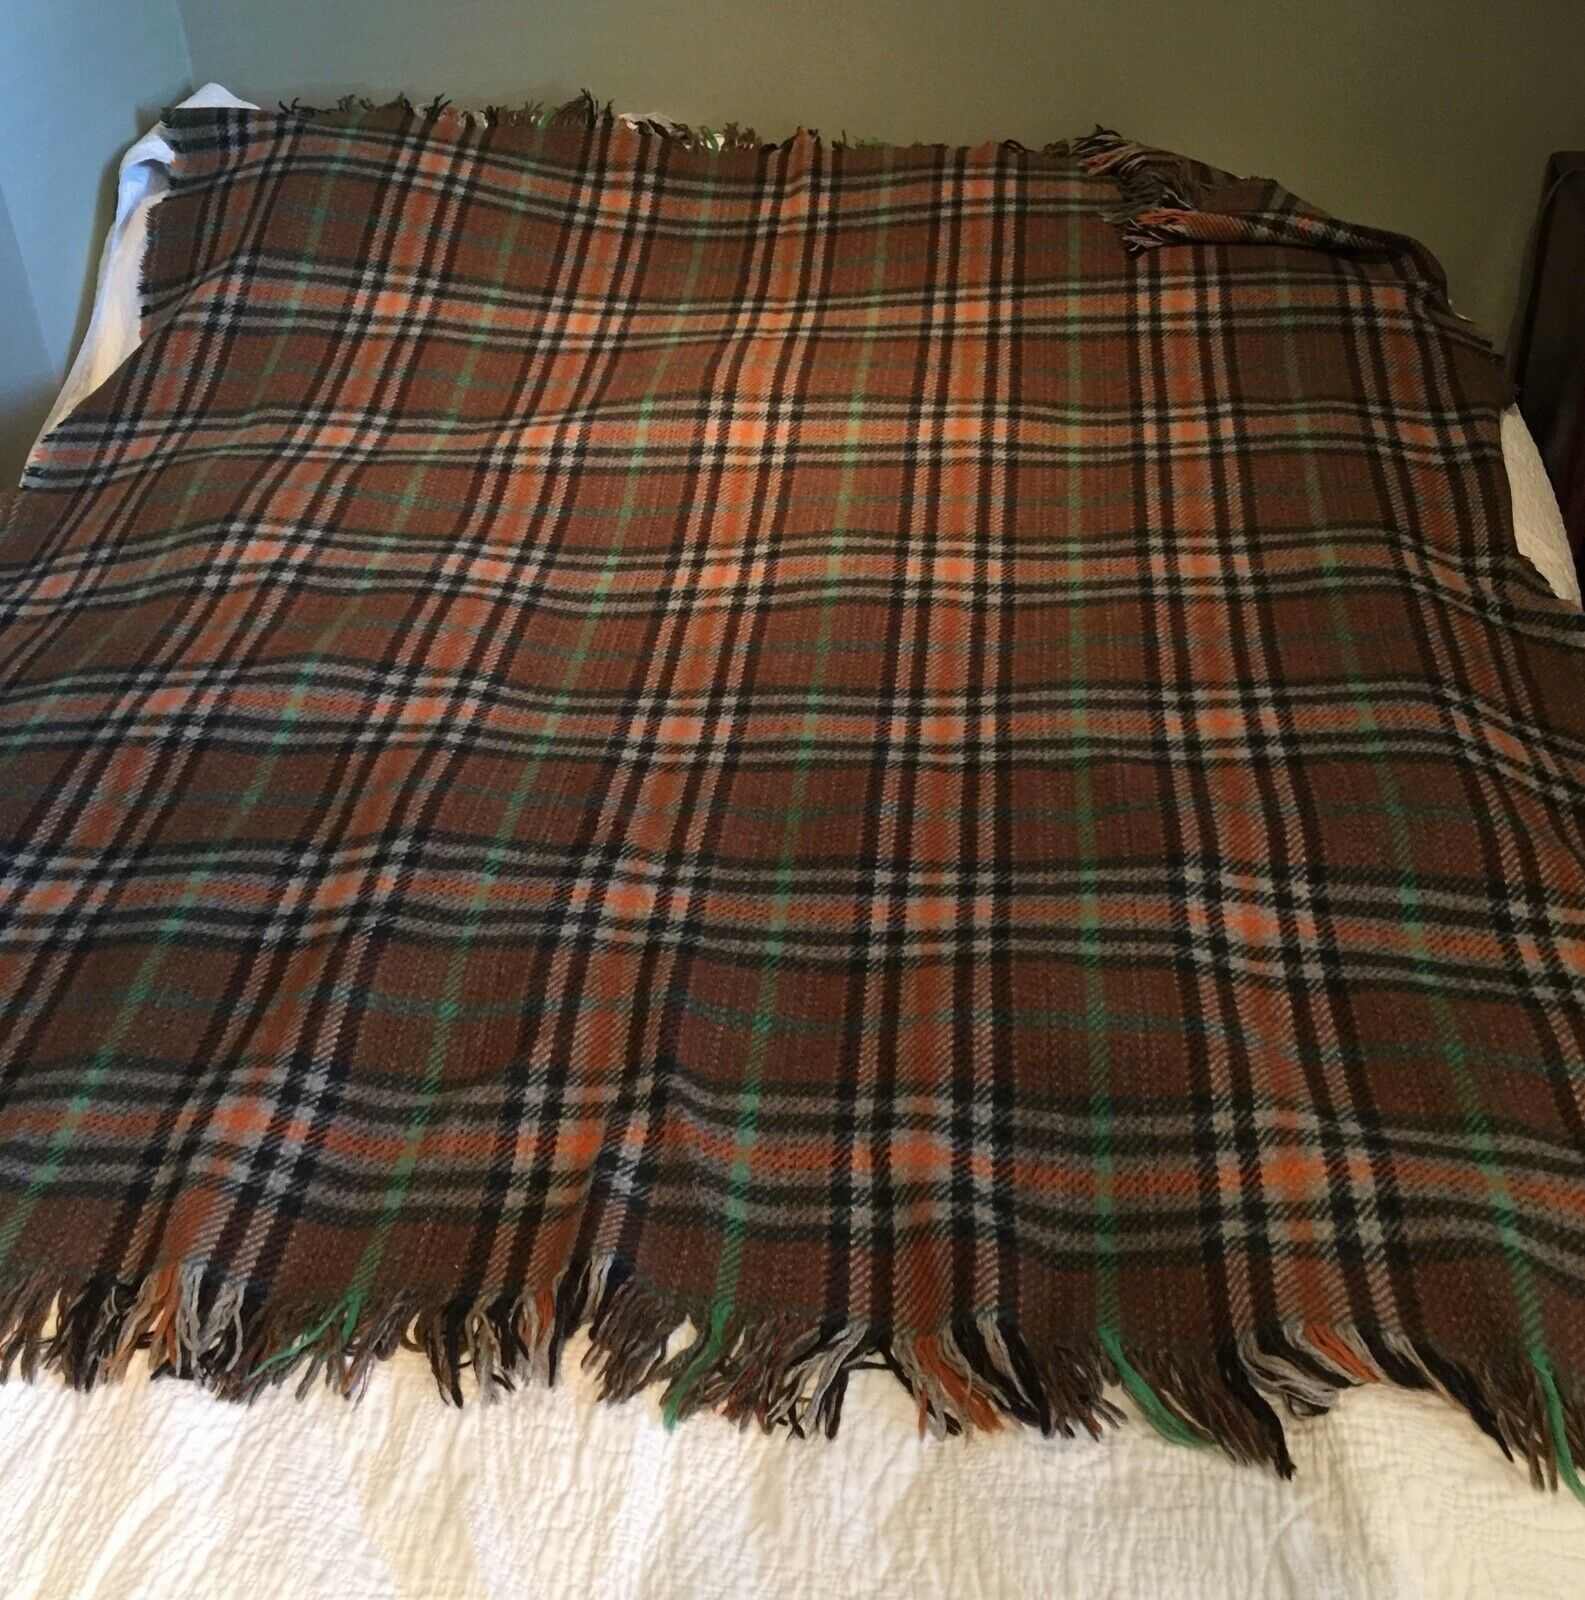 Vintage Plaid Laine Plaid Couverture Wrap 54  X 64  Marron Vert Orange Beige